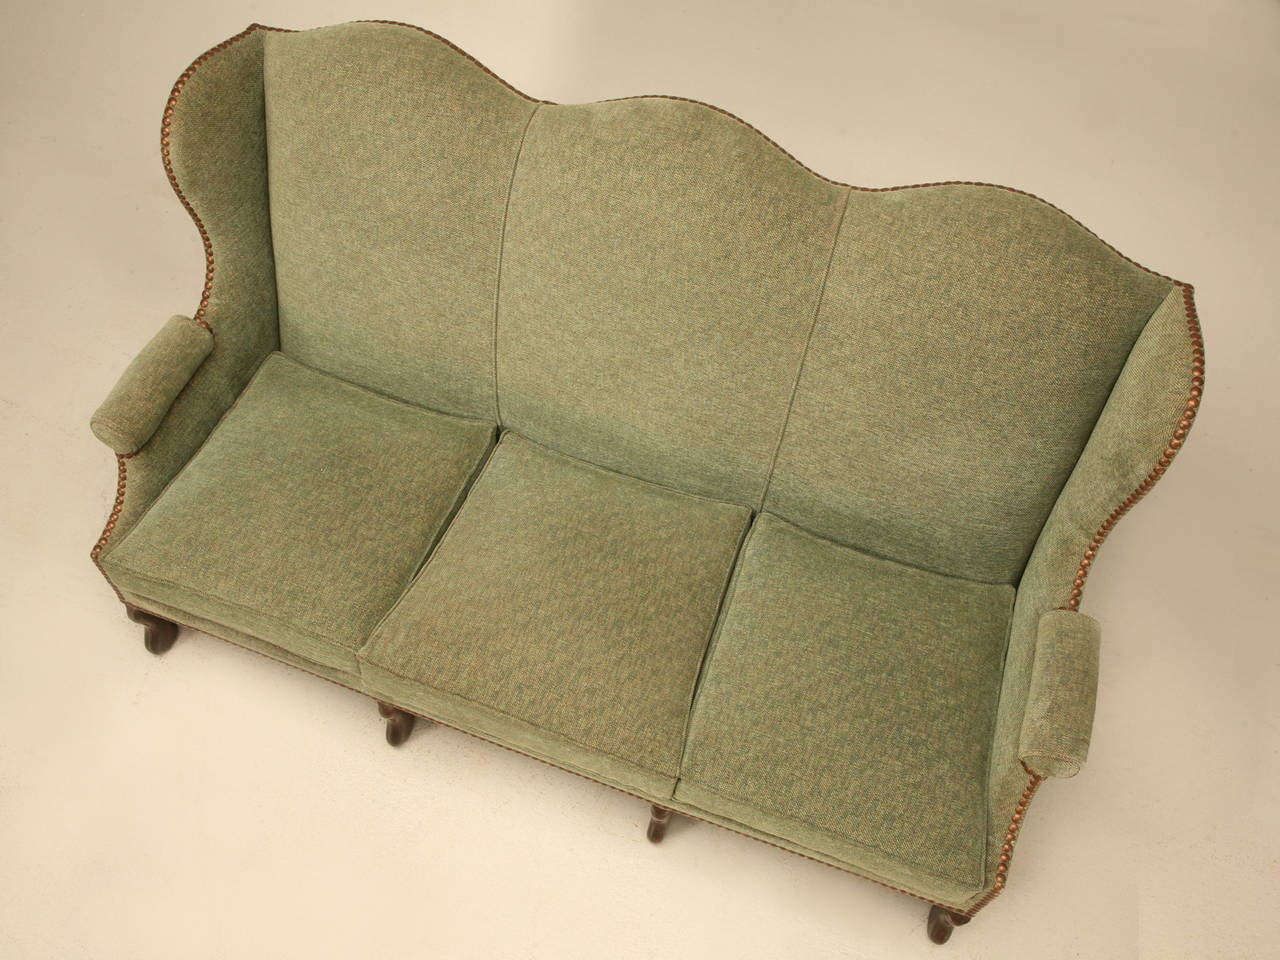 Vintage French Os De Mouton Style Small Sofa or Settee 2